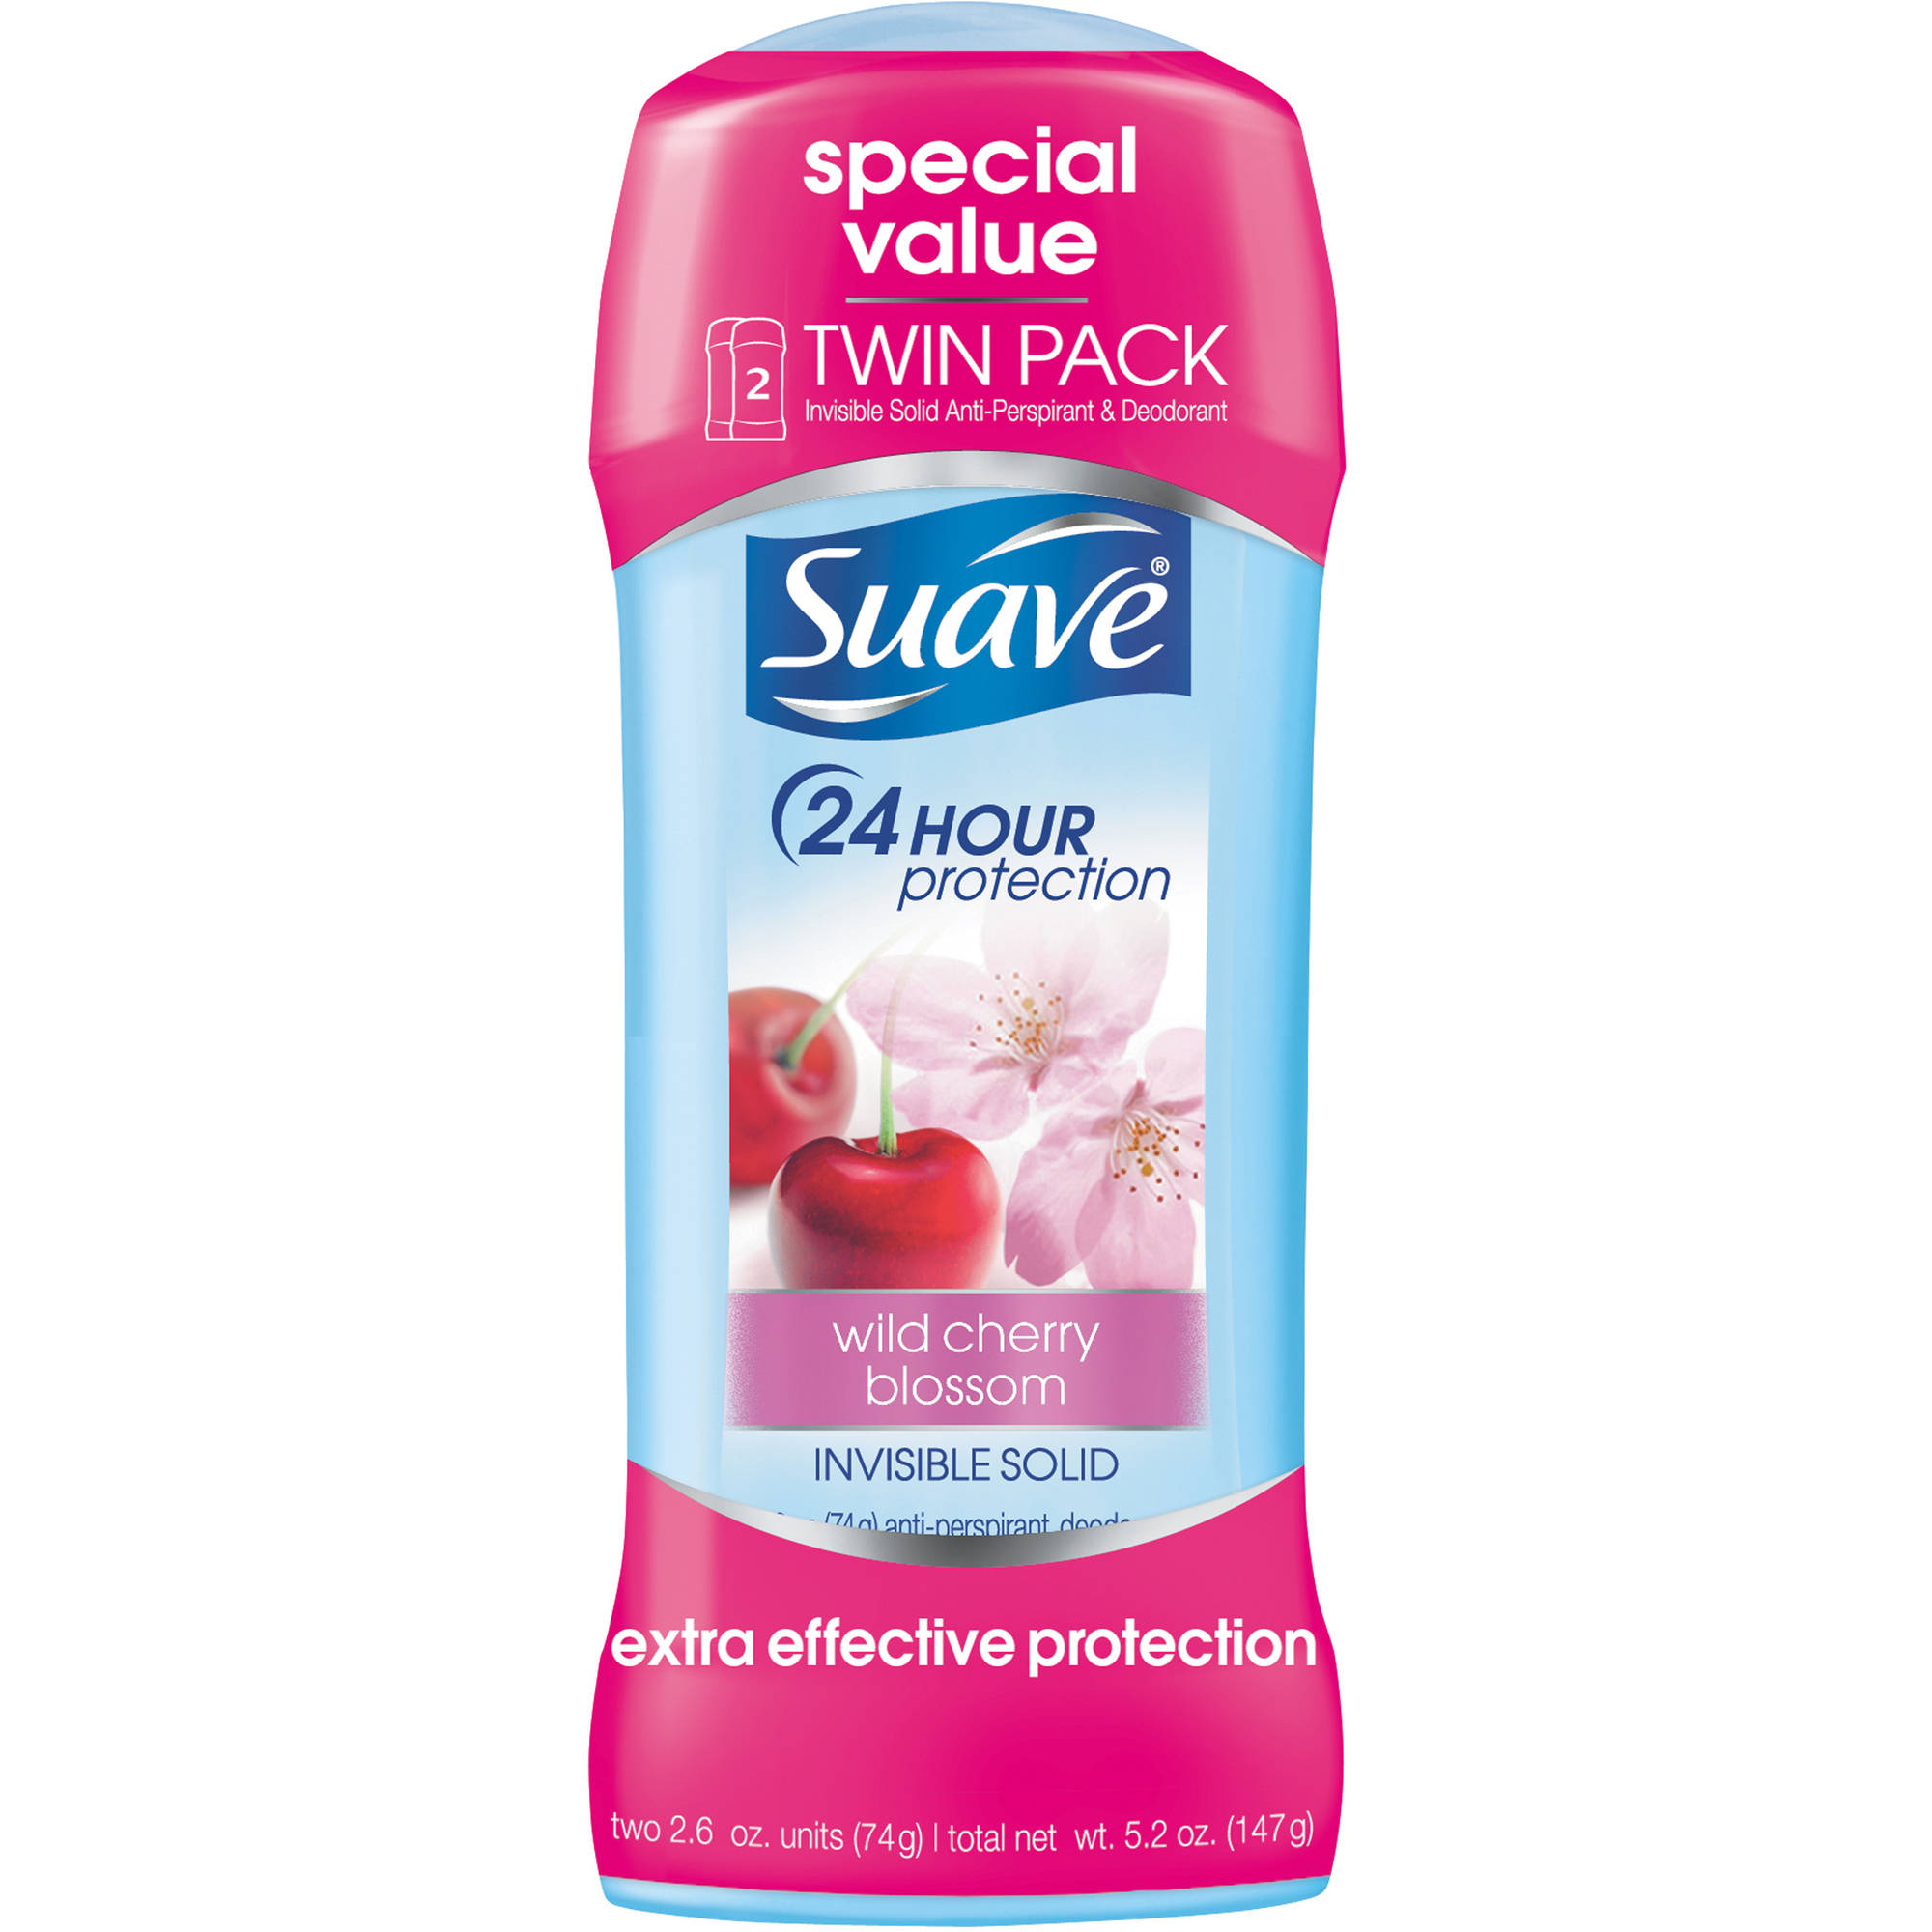 Suave Wild Cherry Blossom Antiperspirant Deodorant, 2.6 oz, Twin Pack